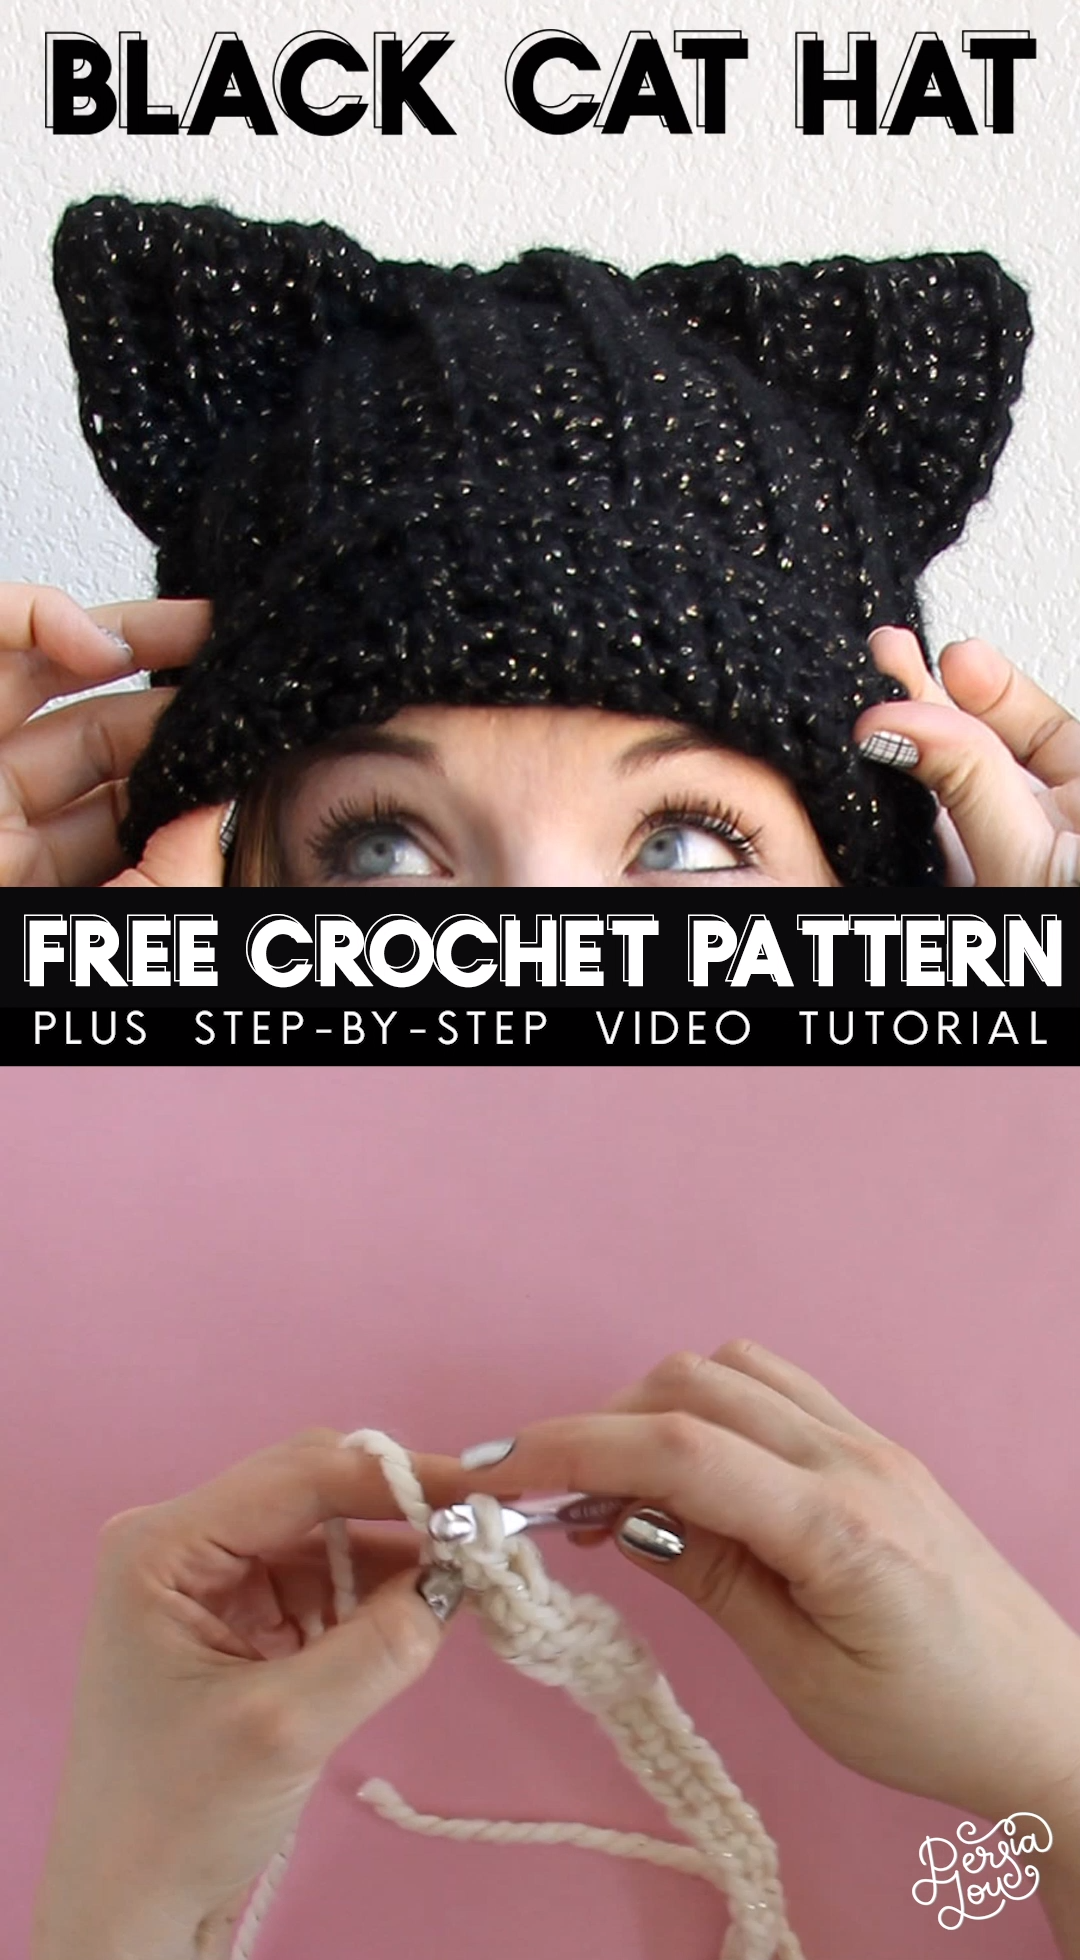 Learn how to crochet your own cat ear hat with this free crochet pattern and video tutorial. This hat has a ribbed texture and subtle slouched shape. It's great for beginning crocheters! #crochethat #crochetcathat #crochetpattern #crochetvideo #video #crochethatpattern #halloweencrochet #freecrochetpattern